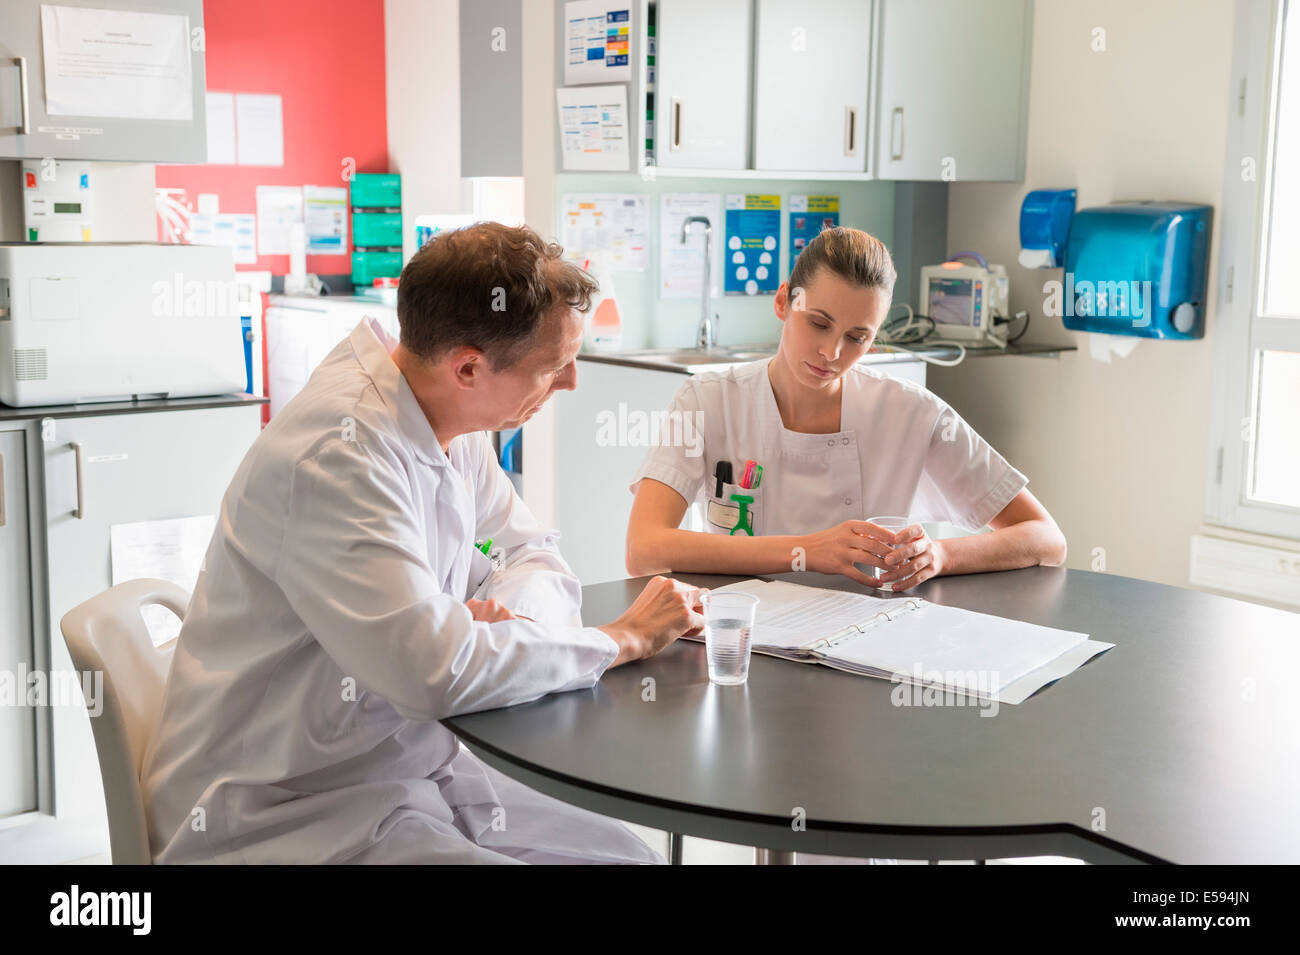 Doctor and nurse analyzing medical record in a hospital - Stock Image